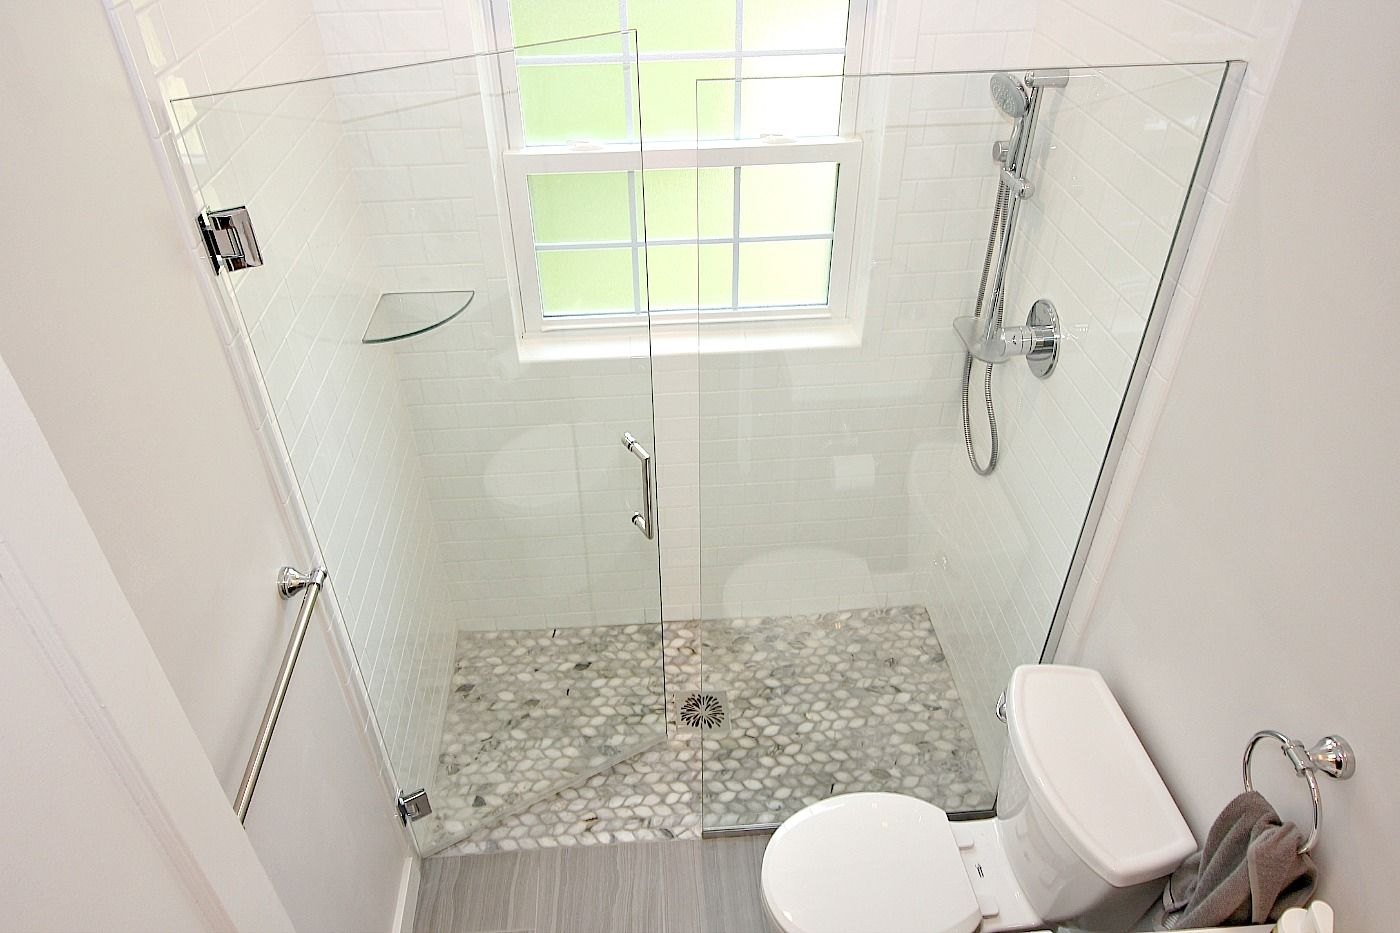 Build Durable Custom Showers and Bathrooms Get Lifetime